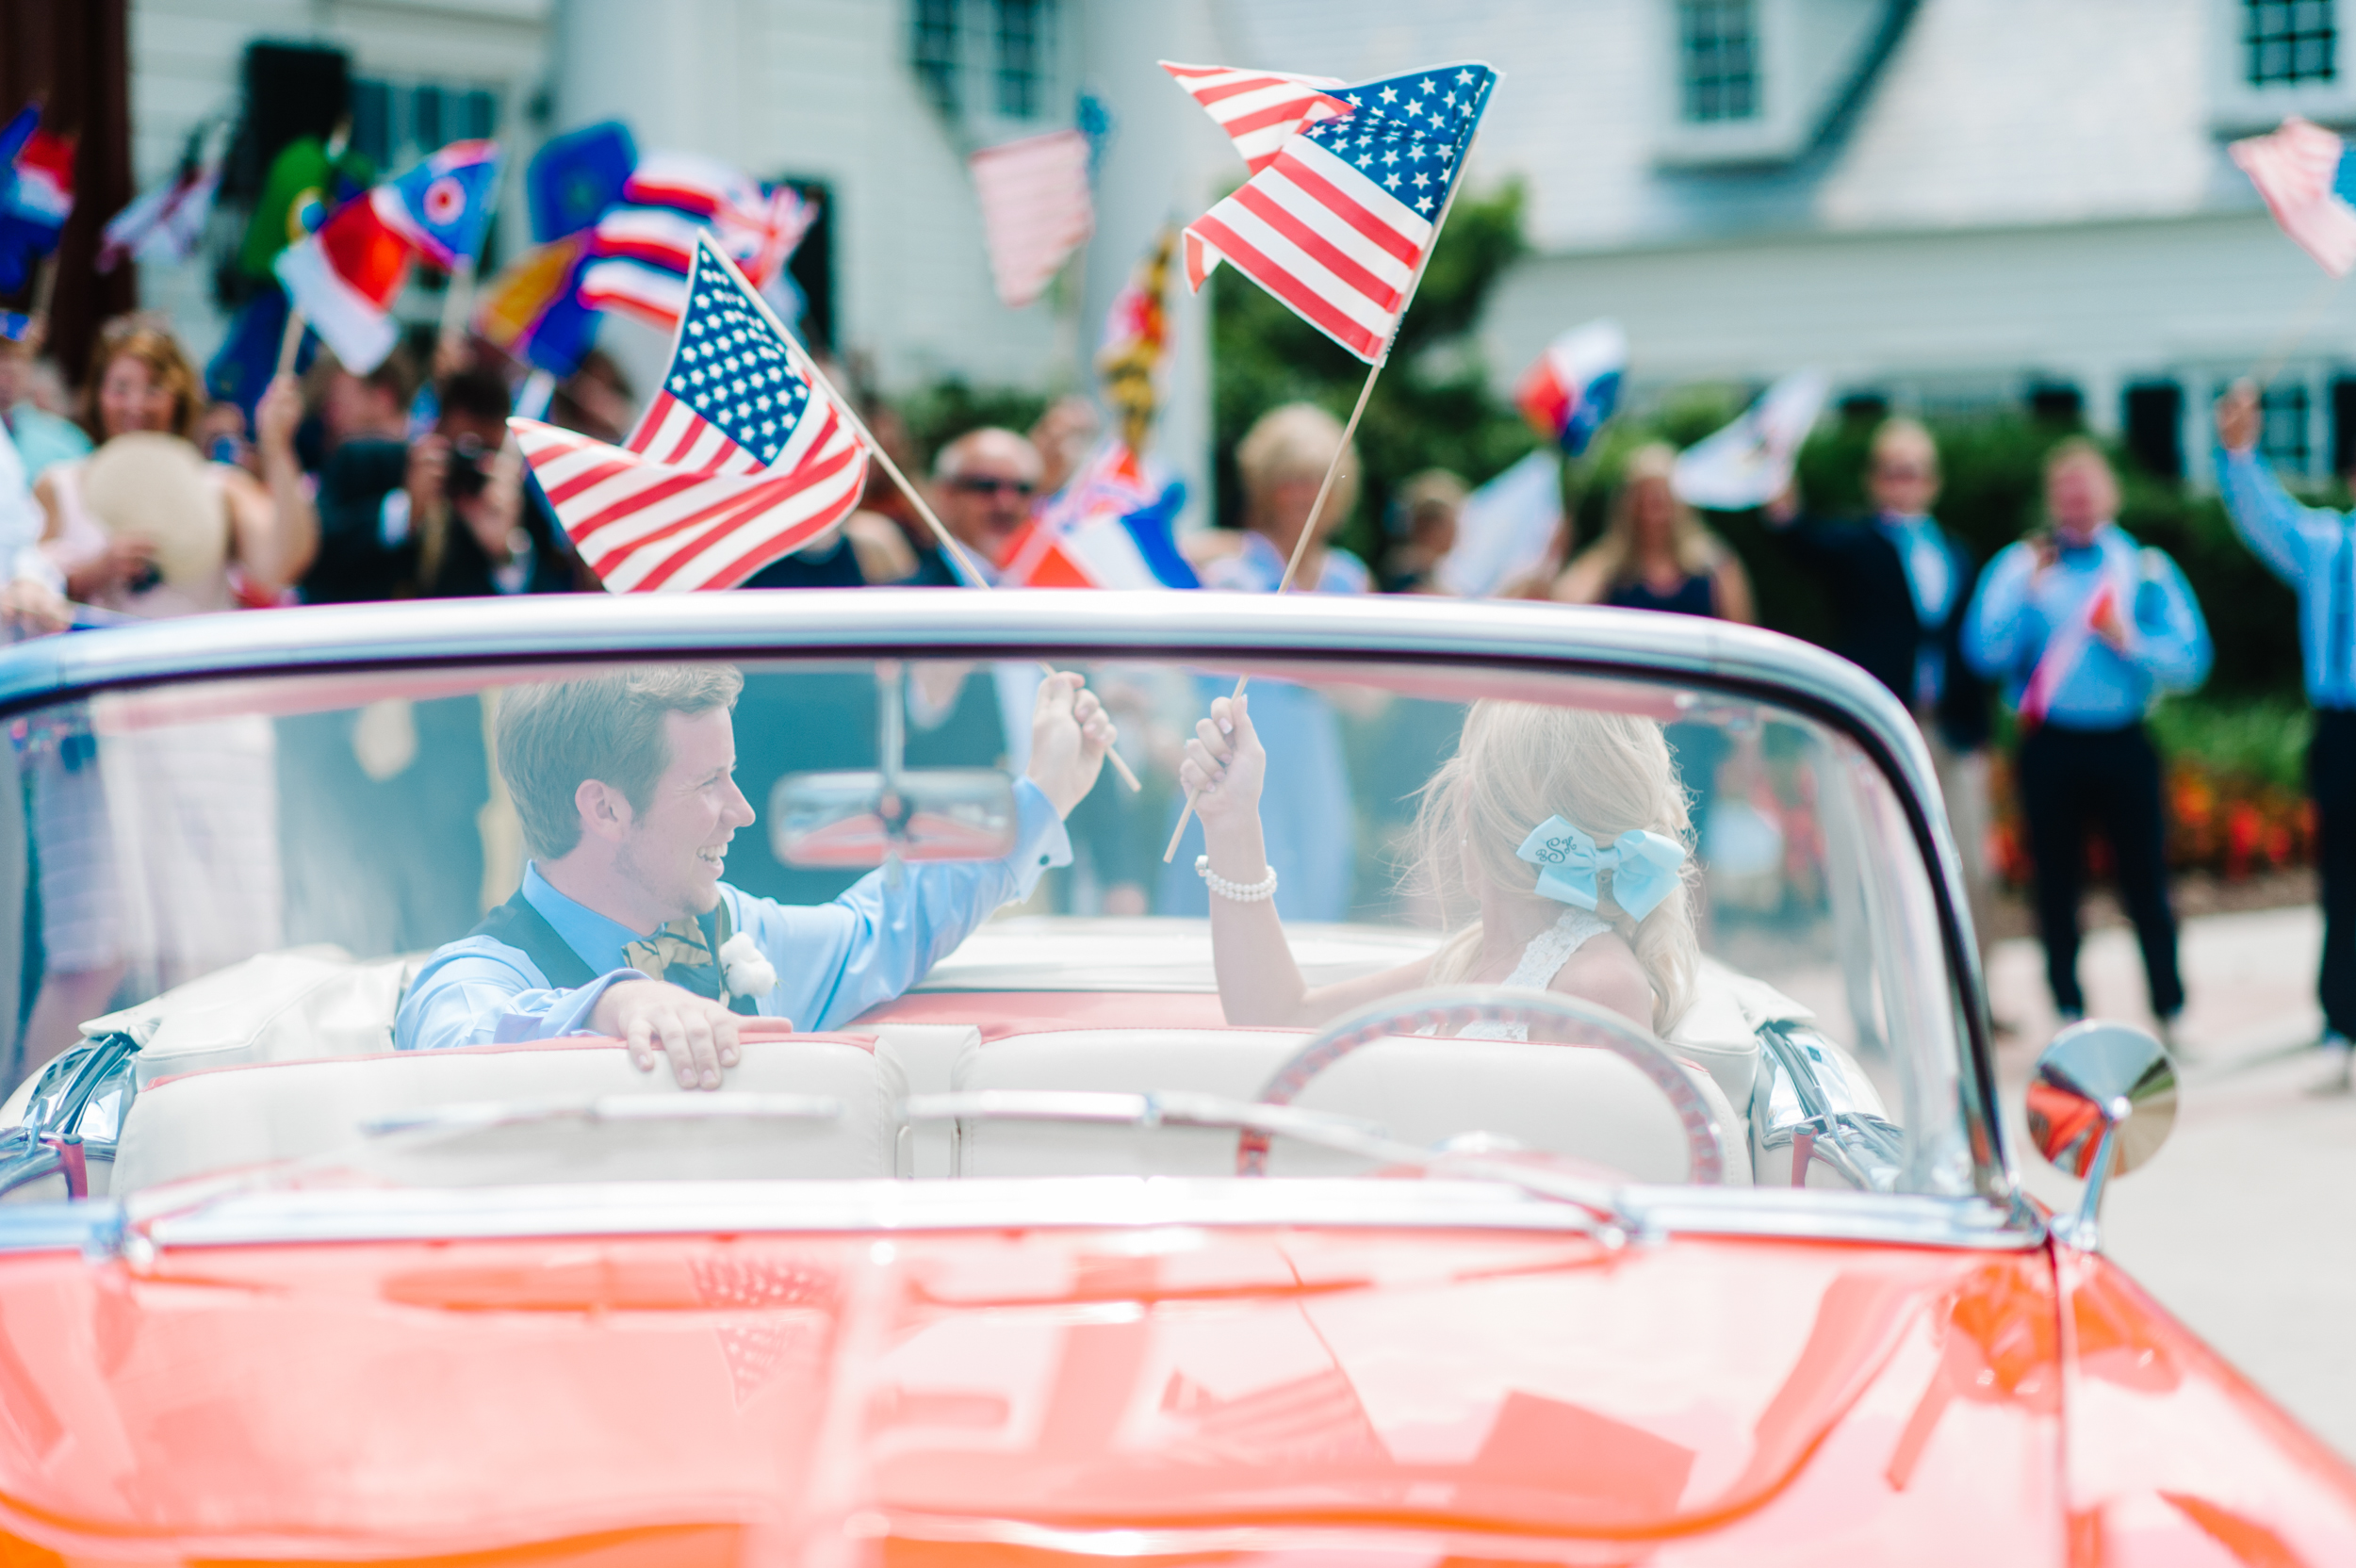 american-flag-wedding-1950s-checy-getaway-car-wed-on-canvas-ben-keys-stunning-and-brilliant-events